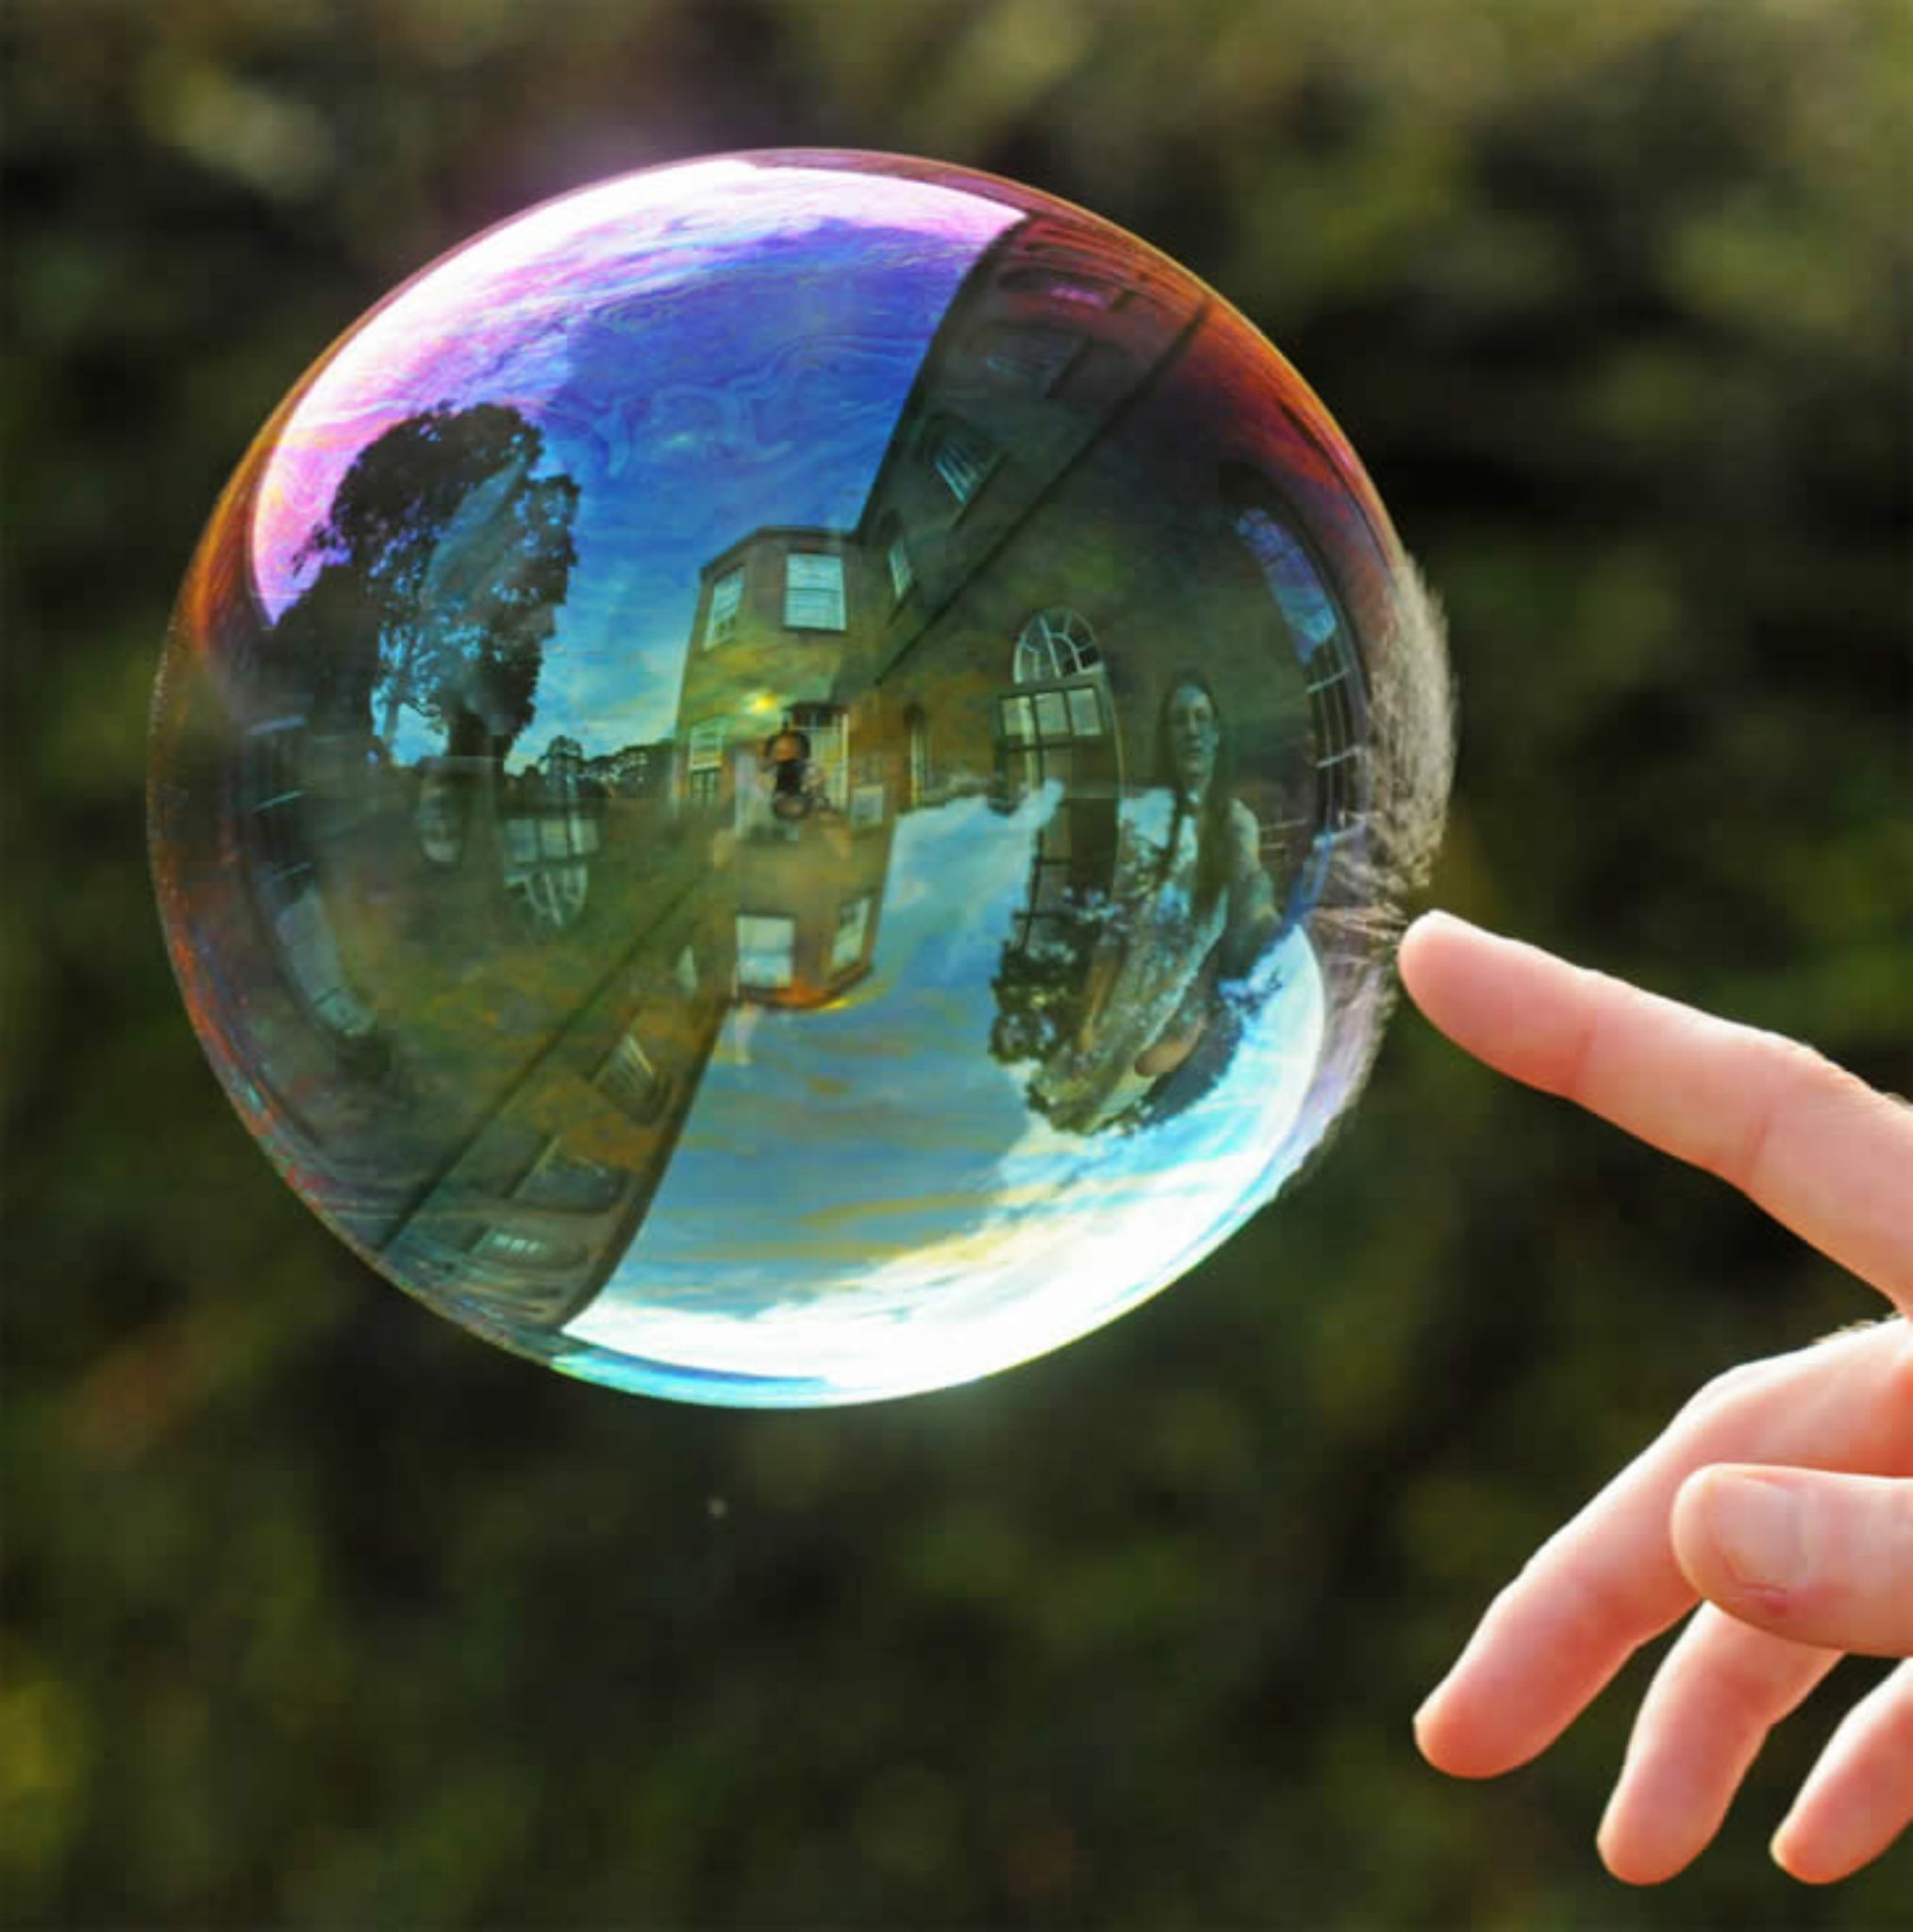 309272,xcitefun-amazing-photography-reflection-of-bubble by vkas